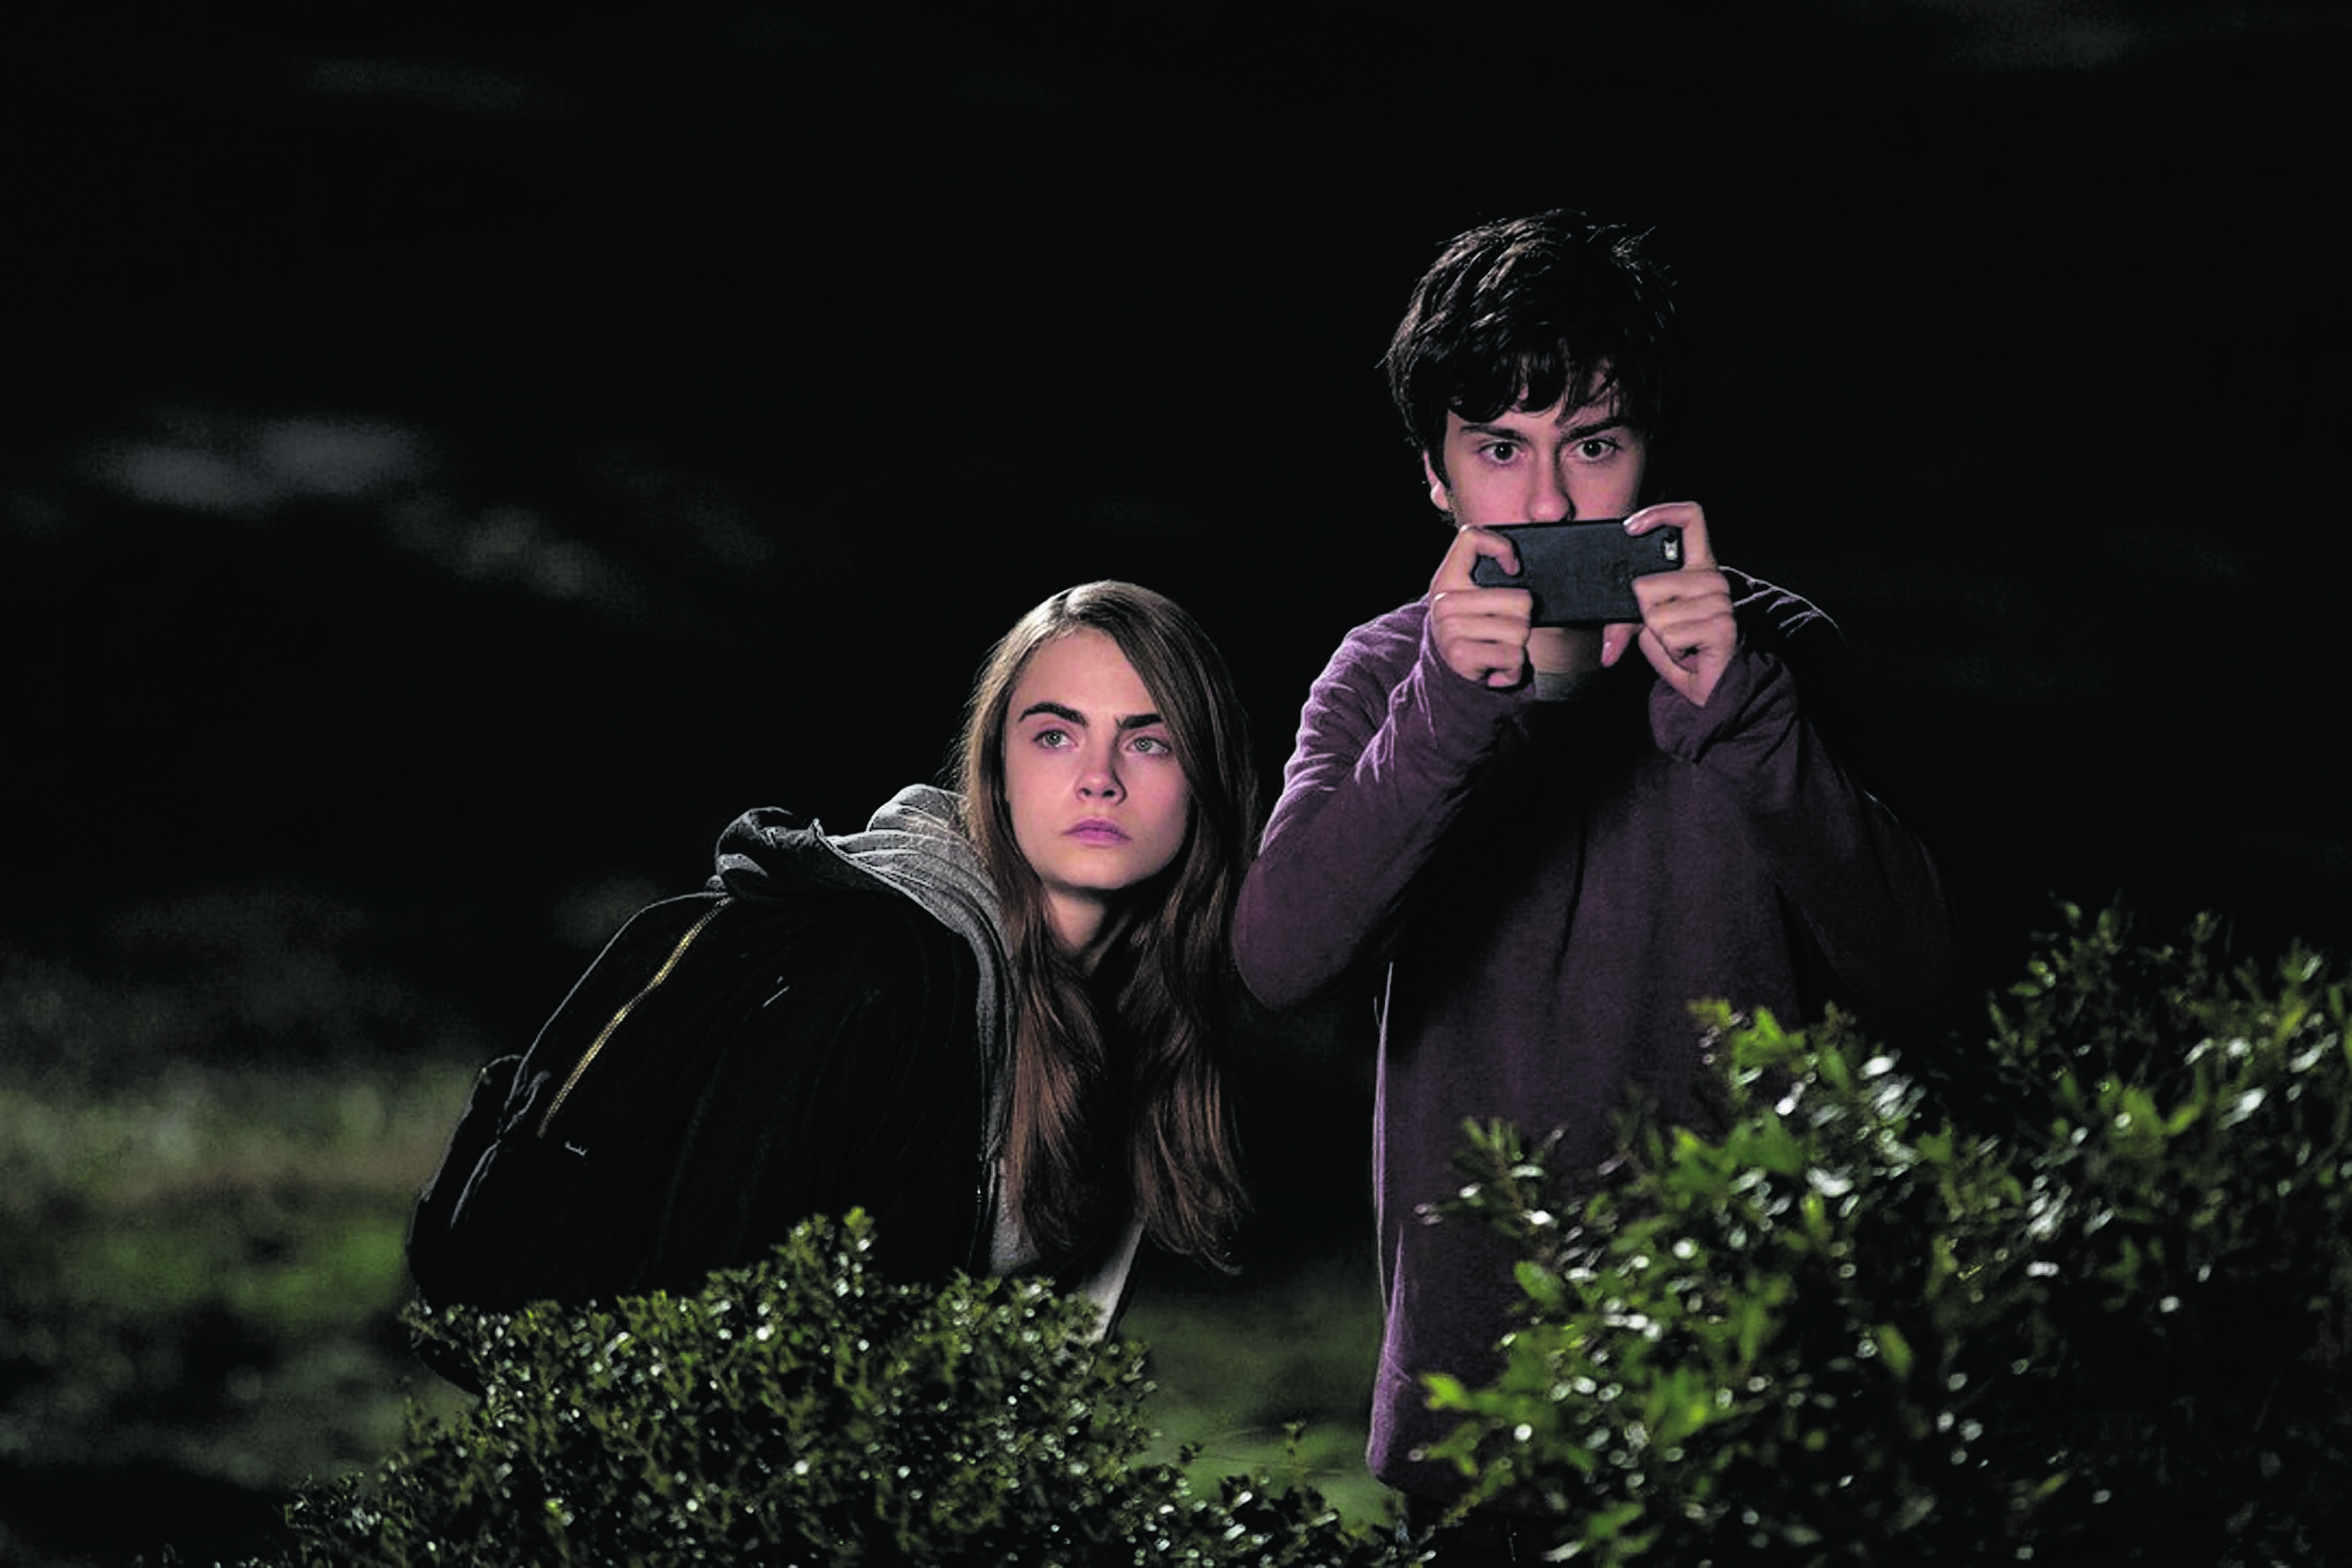 Cara Delevingne and Nat Wolff go on a night-time revenge mission in Paper Towns